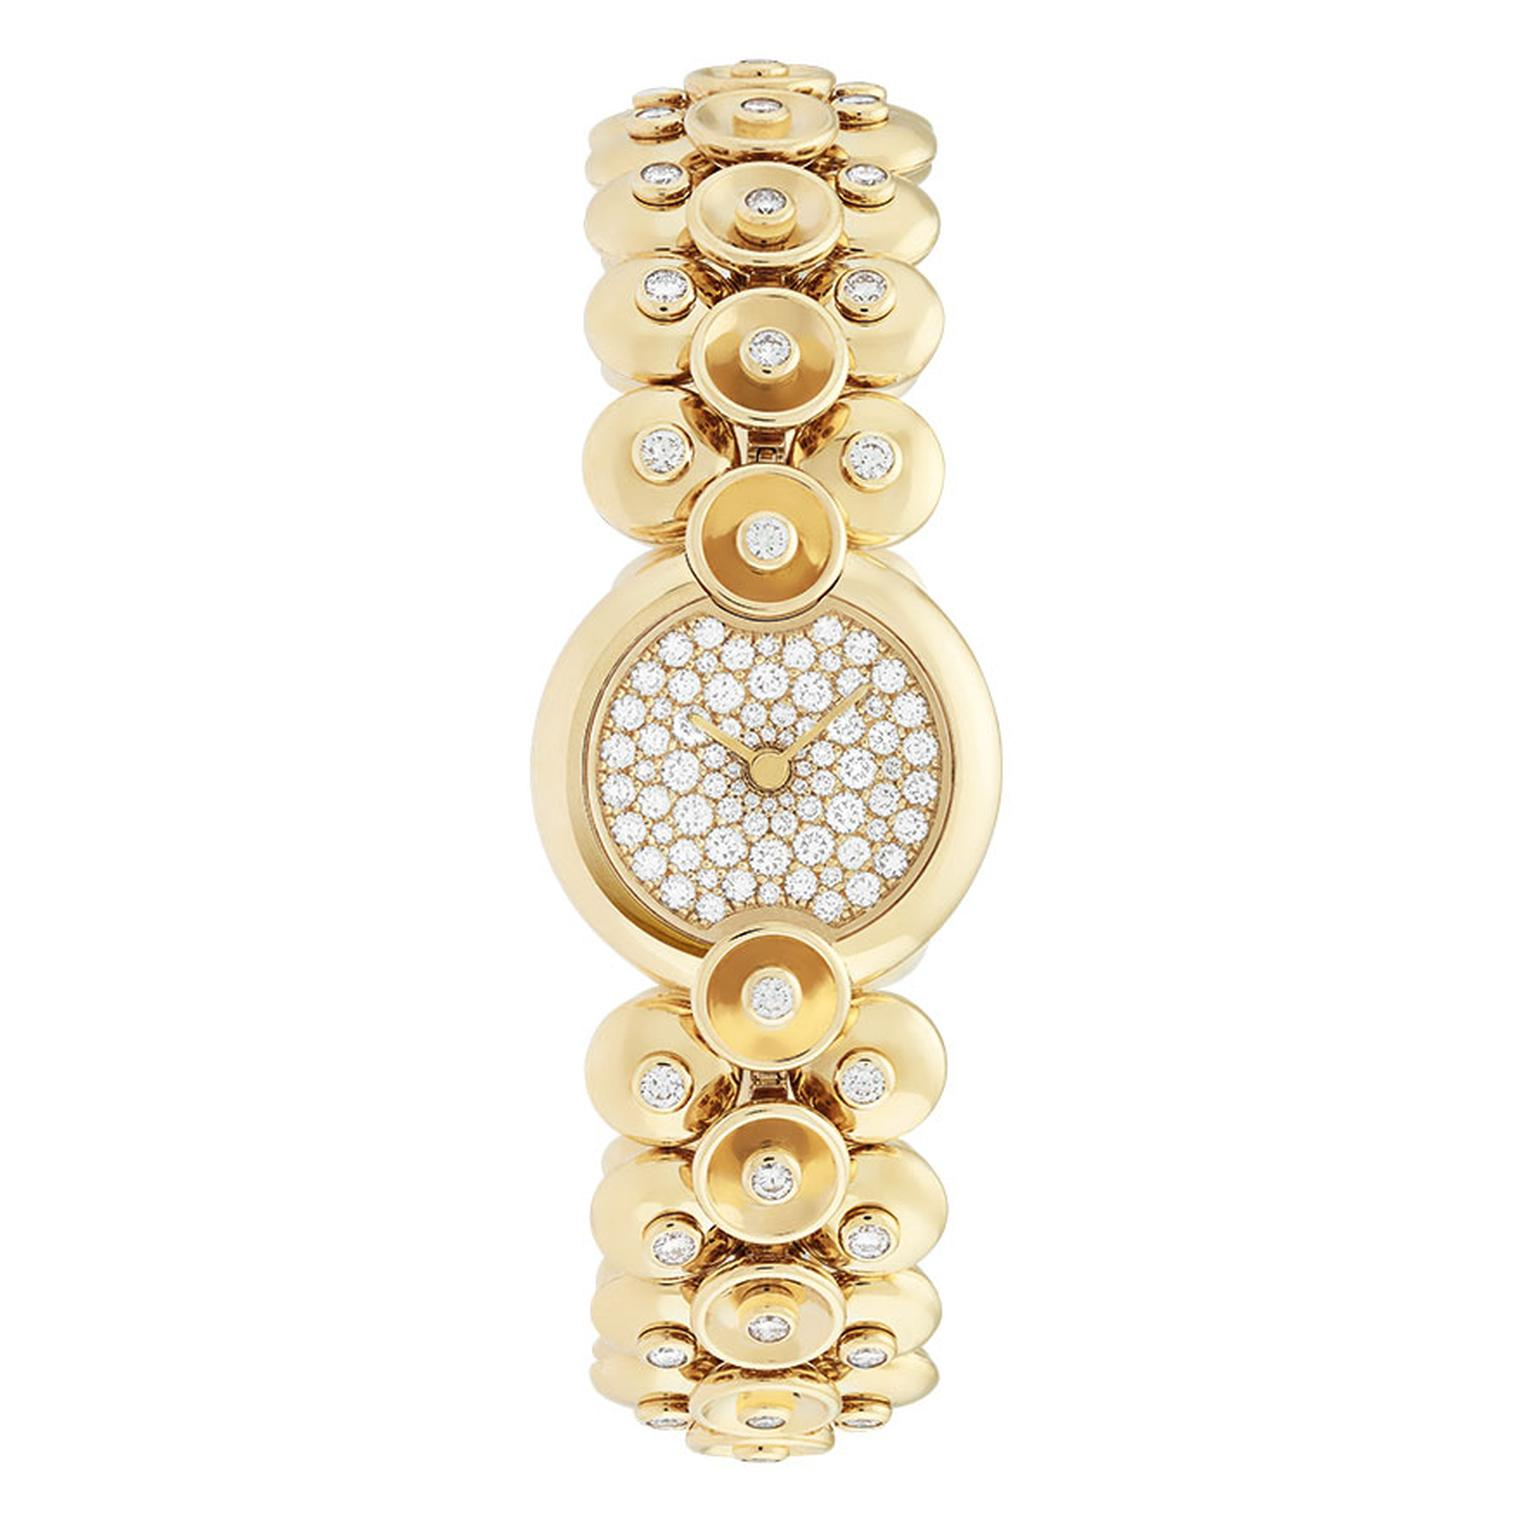 Van Cleef & Arpels Bouton d'Or watch